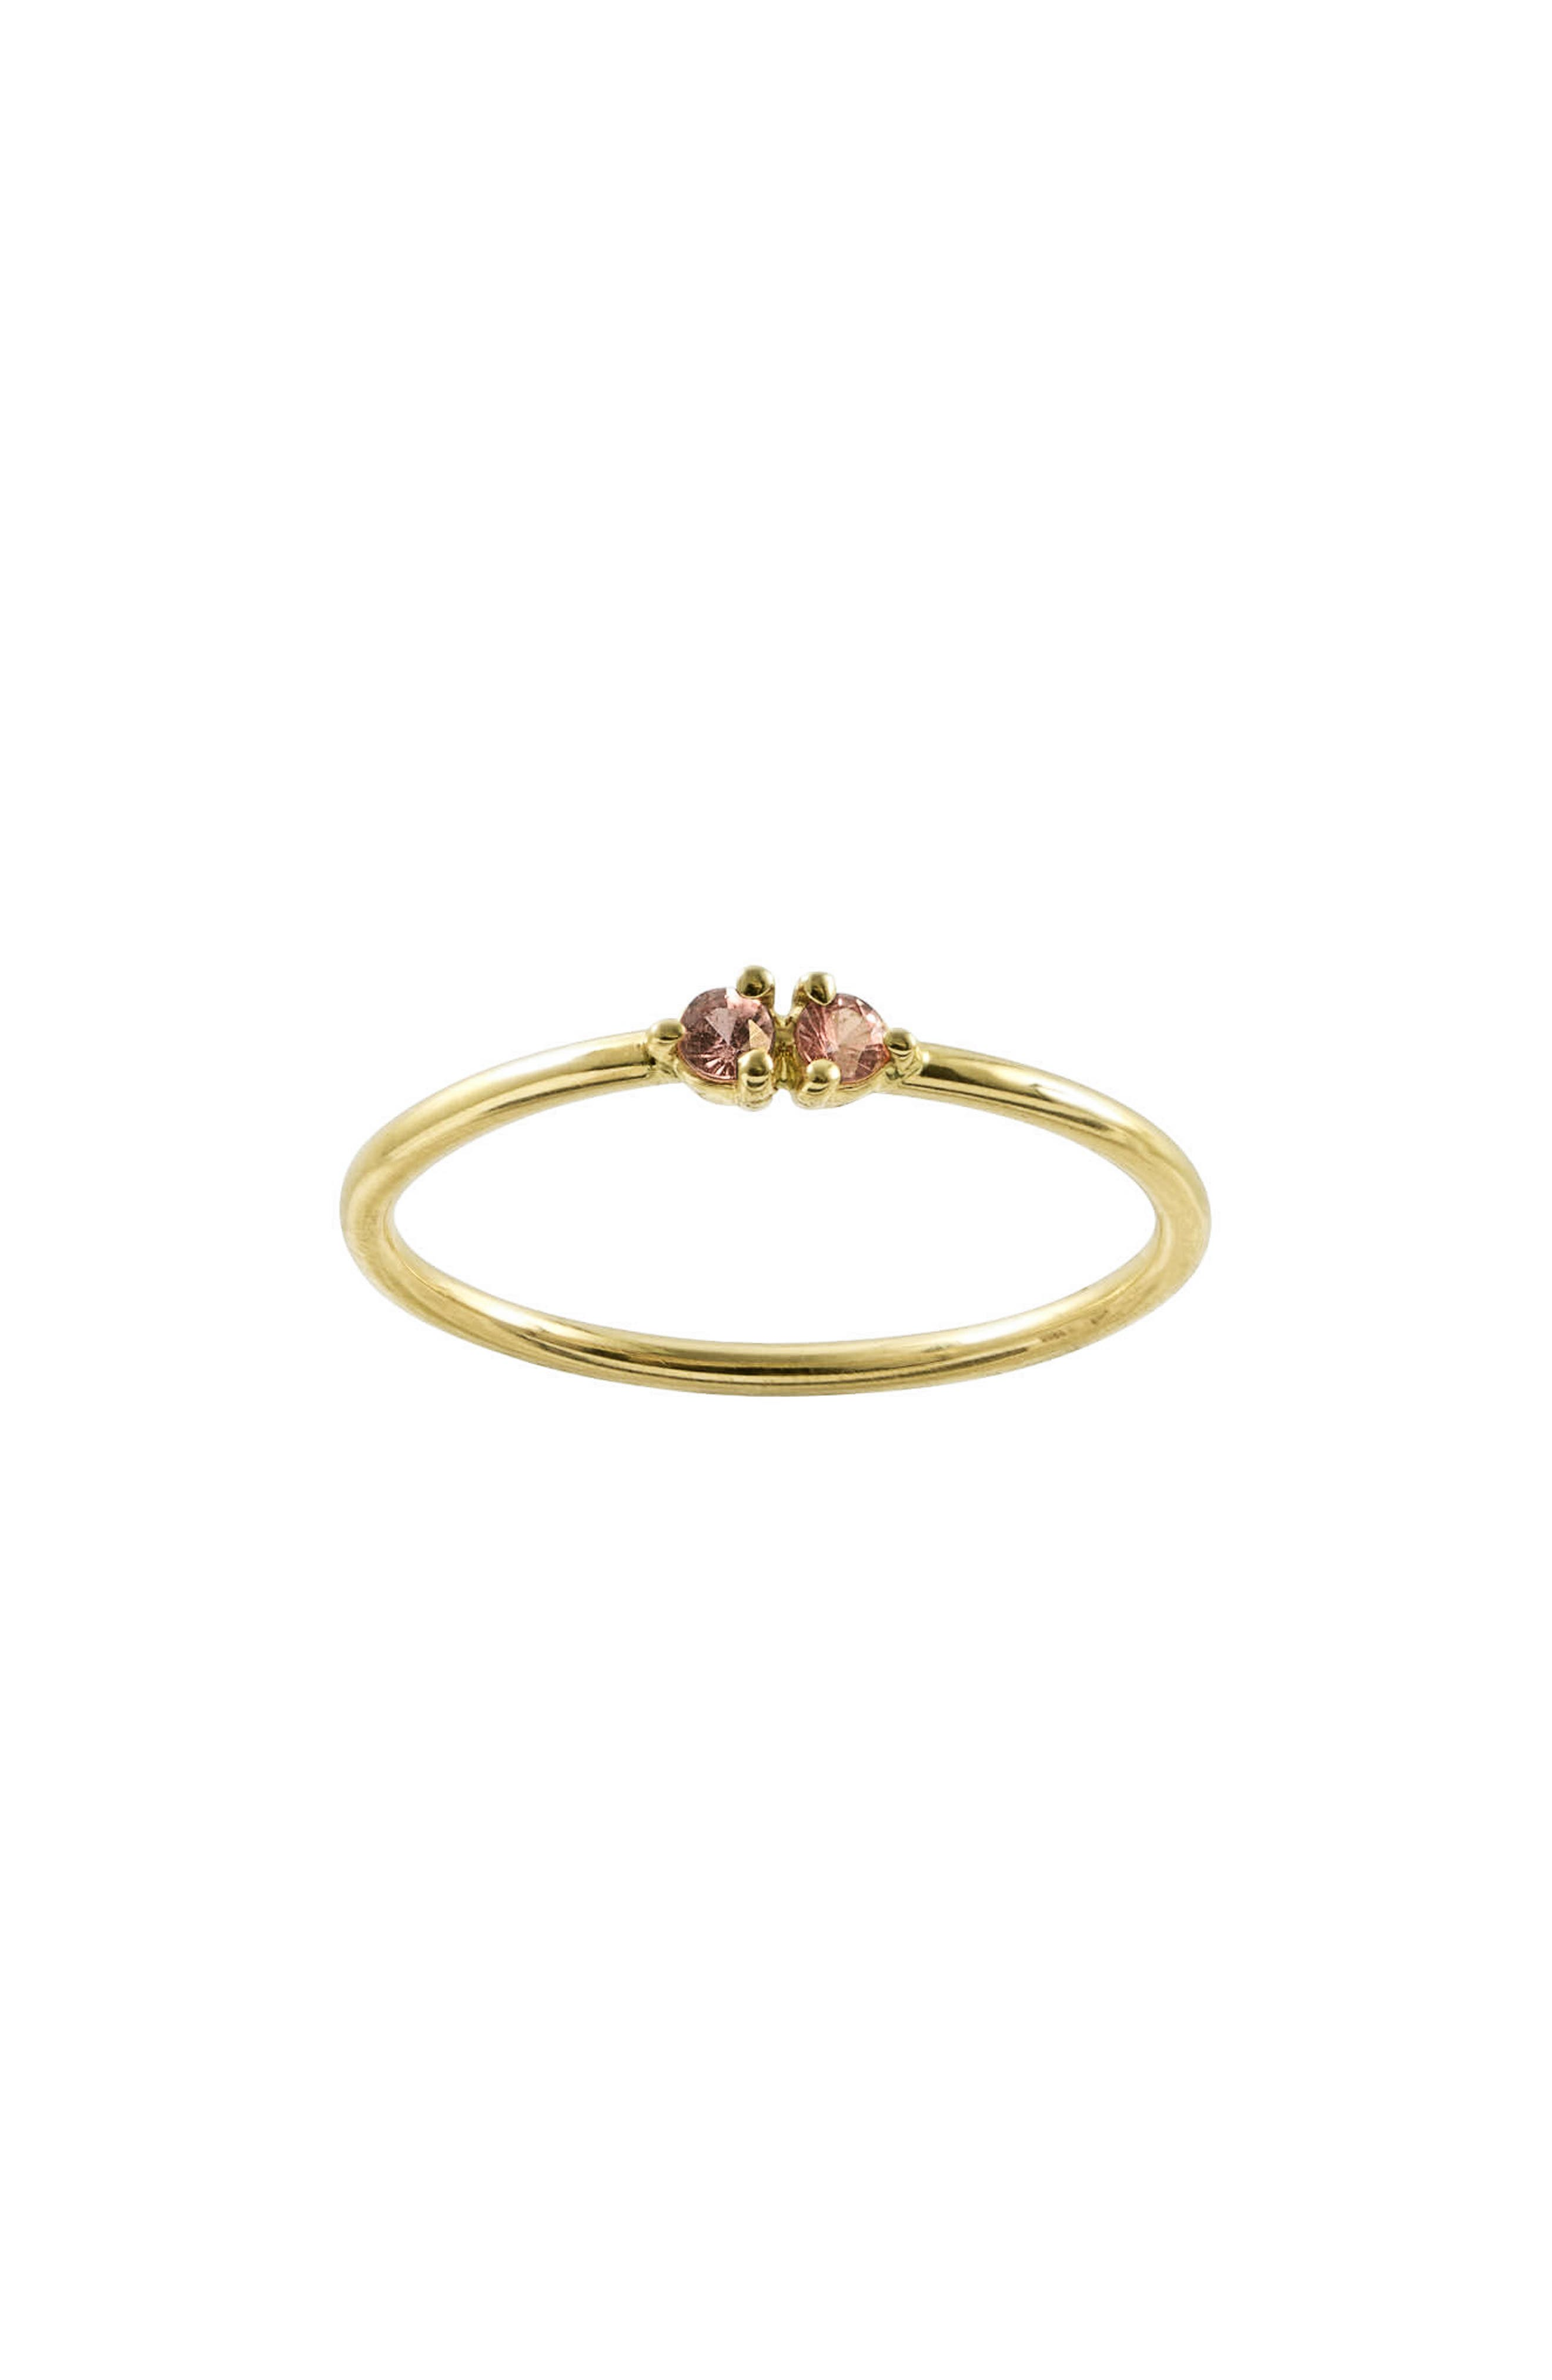 Double Stone Ring,                             Main thumbnail 1, color,                             PINK TOURMALINE